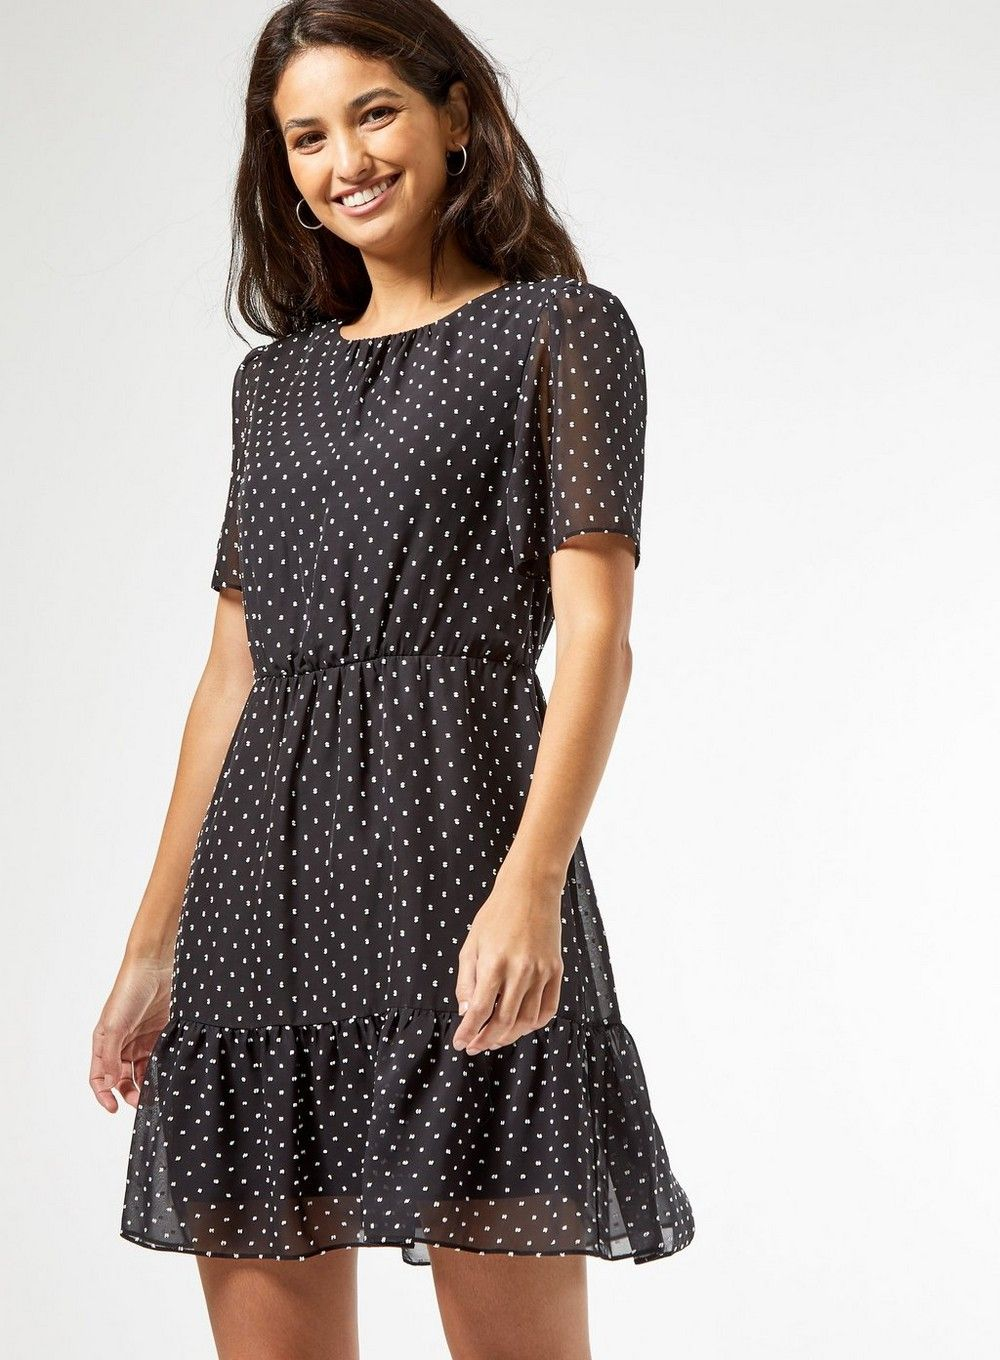 Dorothy Perkins Womens Multi Coloured Dobby Frill Fit and Flare Polka Dot Dress